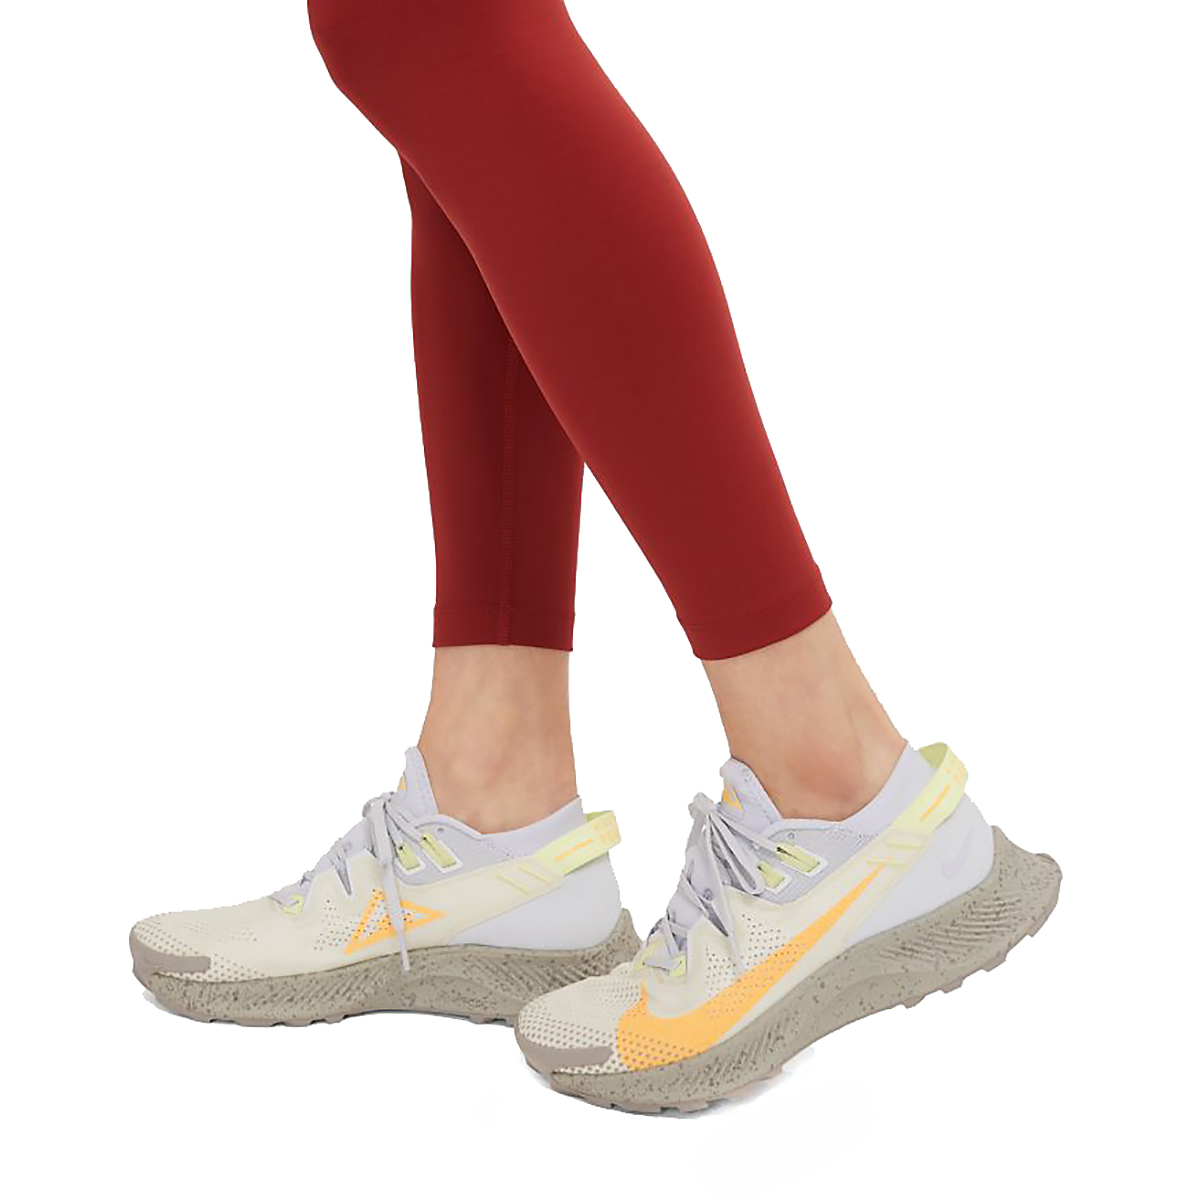 Women's Nike Epic Luxe Trail Running Tights - Color: Dark Cayenne/Cerulean/Reflective Silver - Size: XS, Dark Cayenne/Cerulean/Reflective Silver, large, image 7